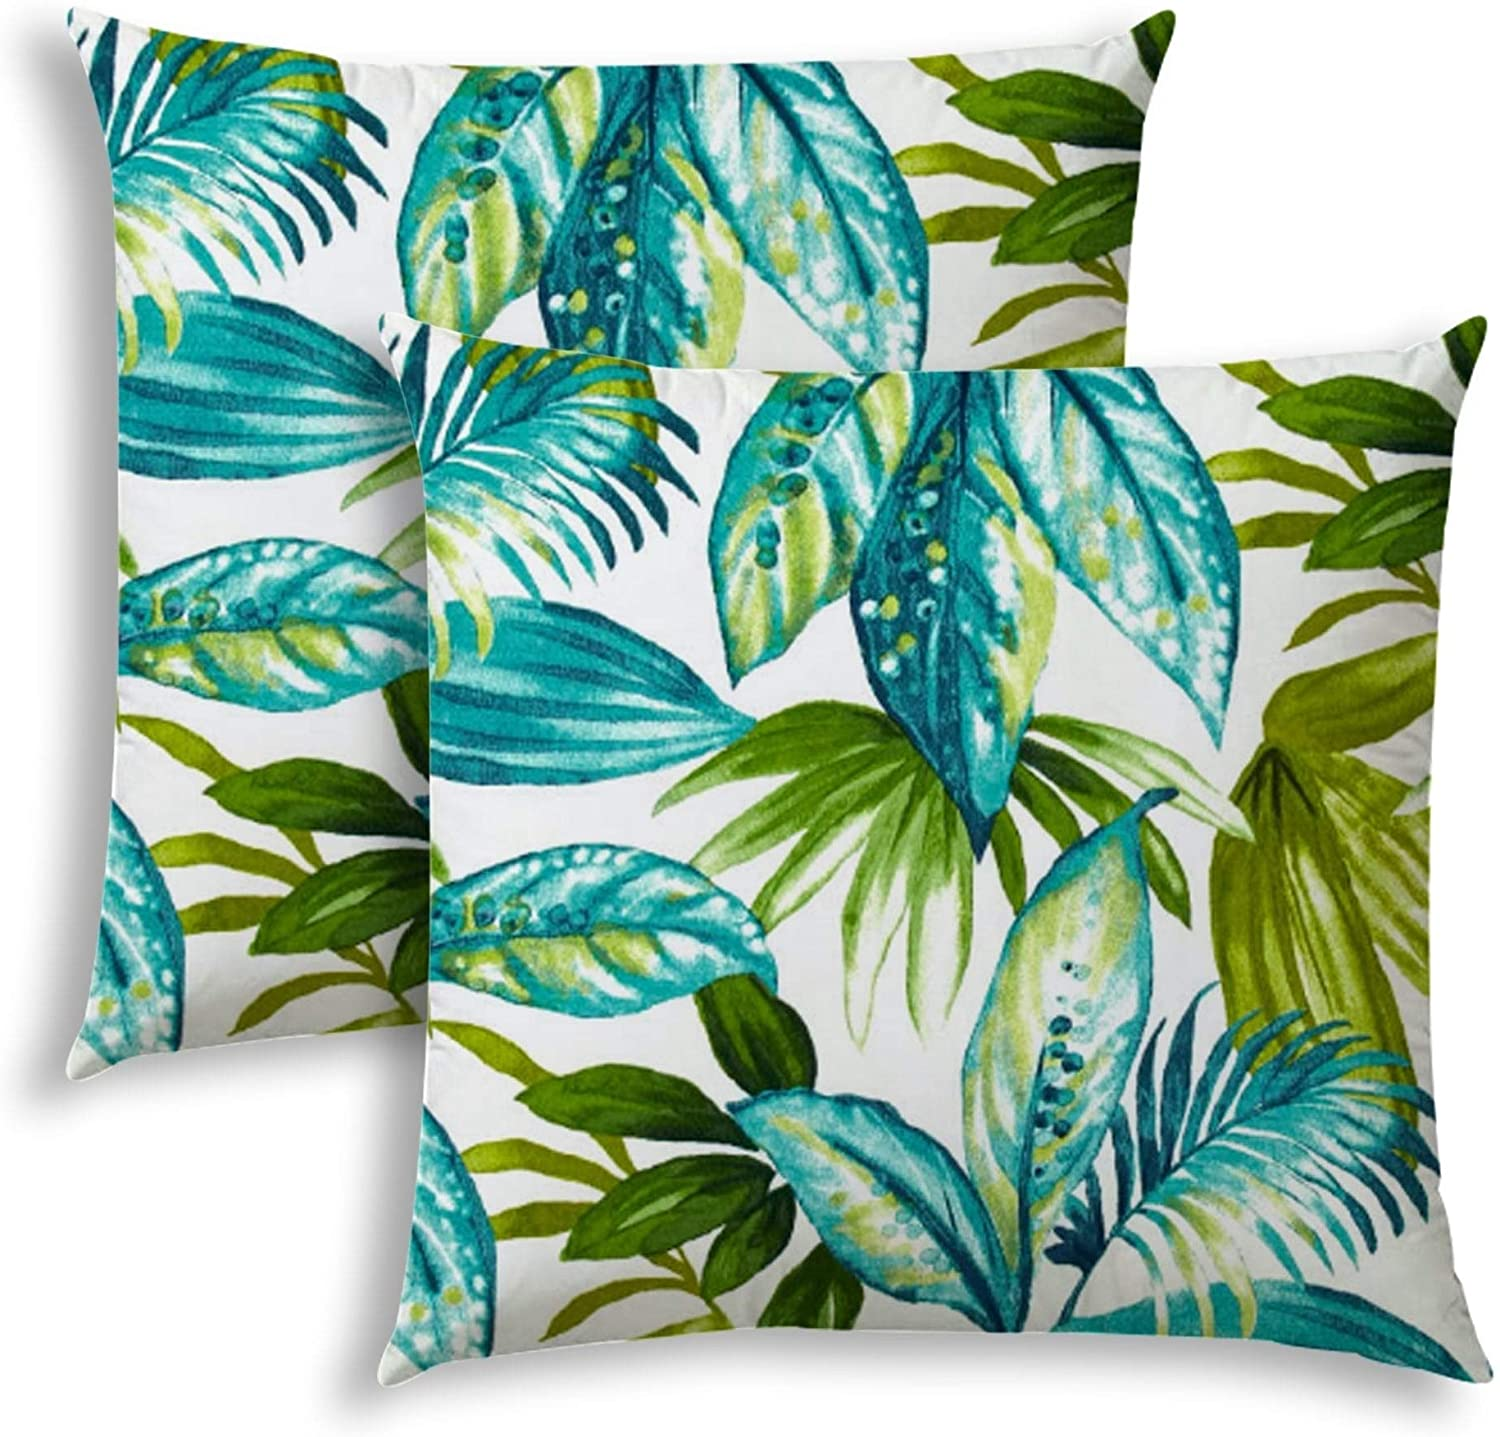 Island Cay Indoor/Outdoor Pillows Sewn Closure (Set Two) N/ Color Graphic Modern Contemporary Polyester Water Resistant